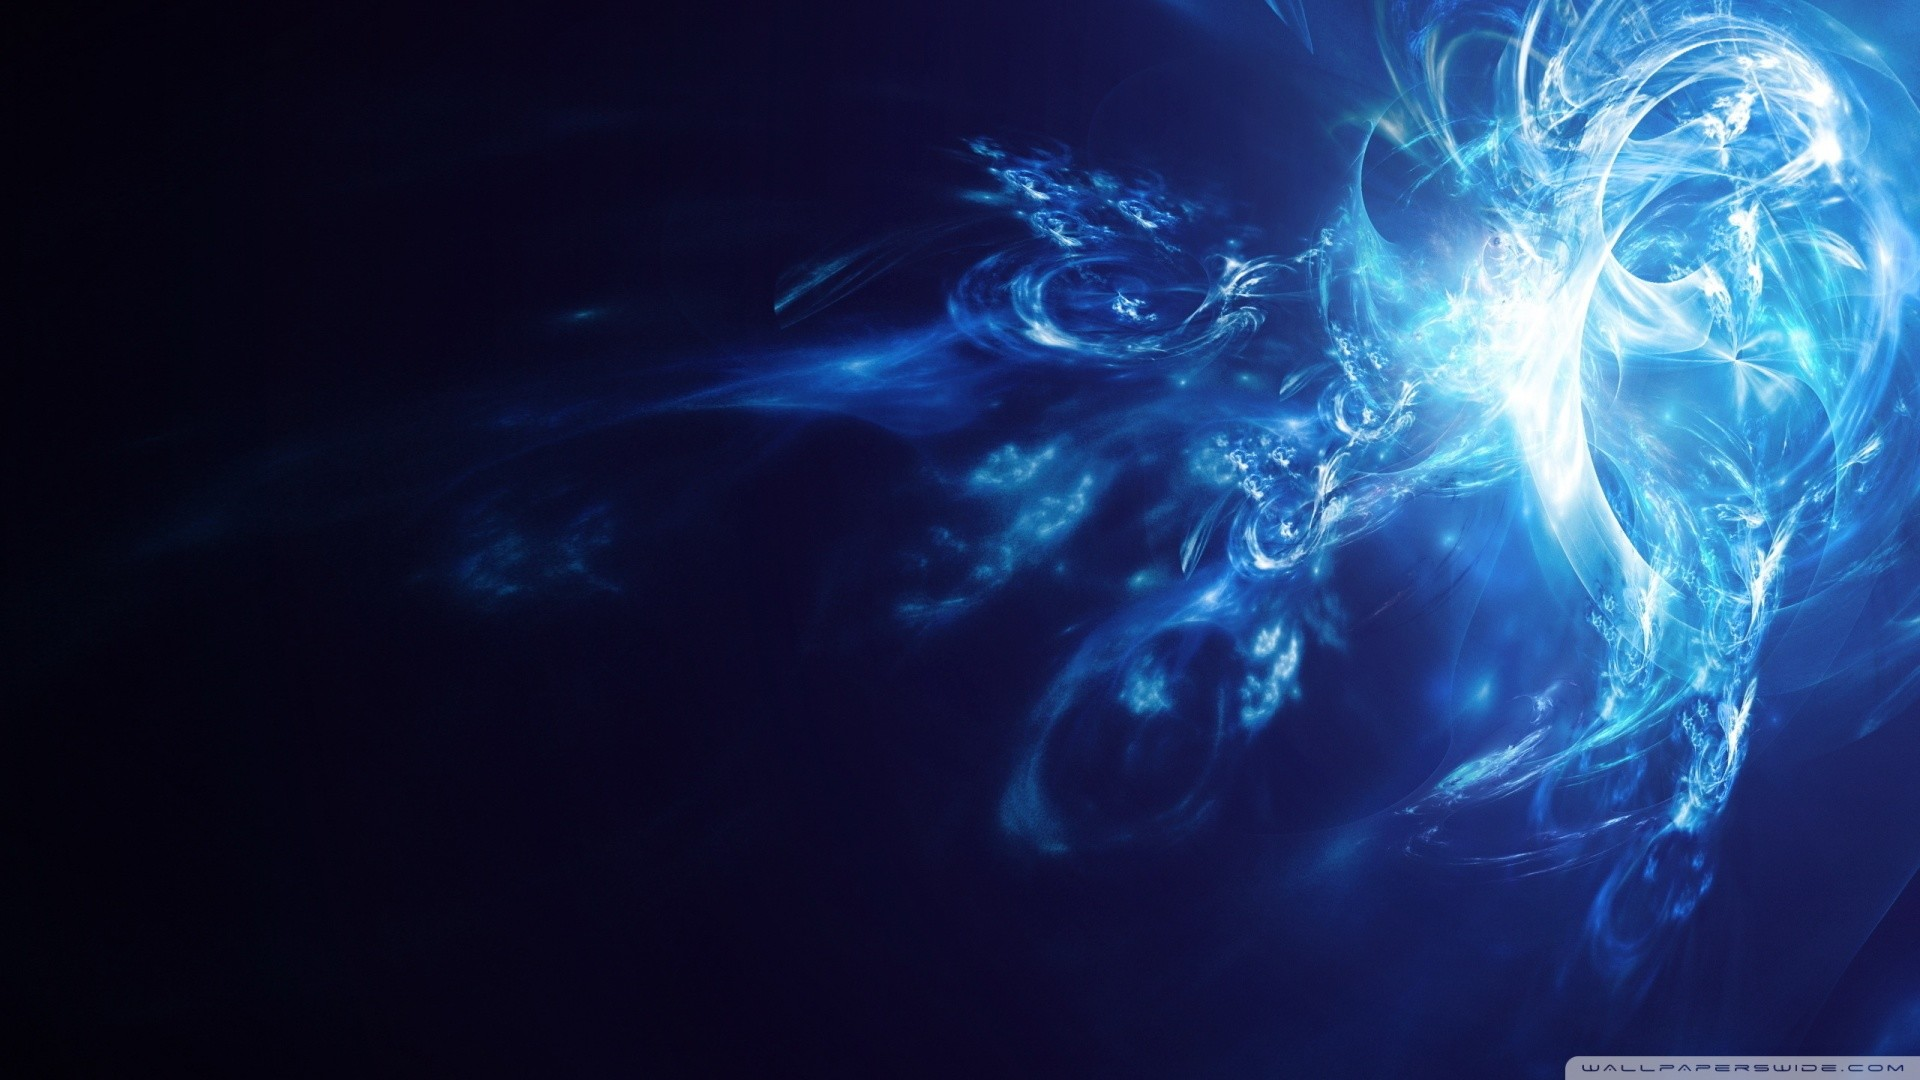 1920x1080 Blue Smoke 2 Wallpaper  Blue, Smoke, 2